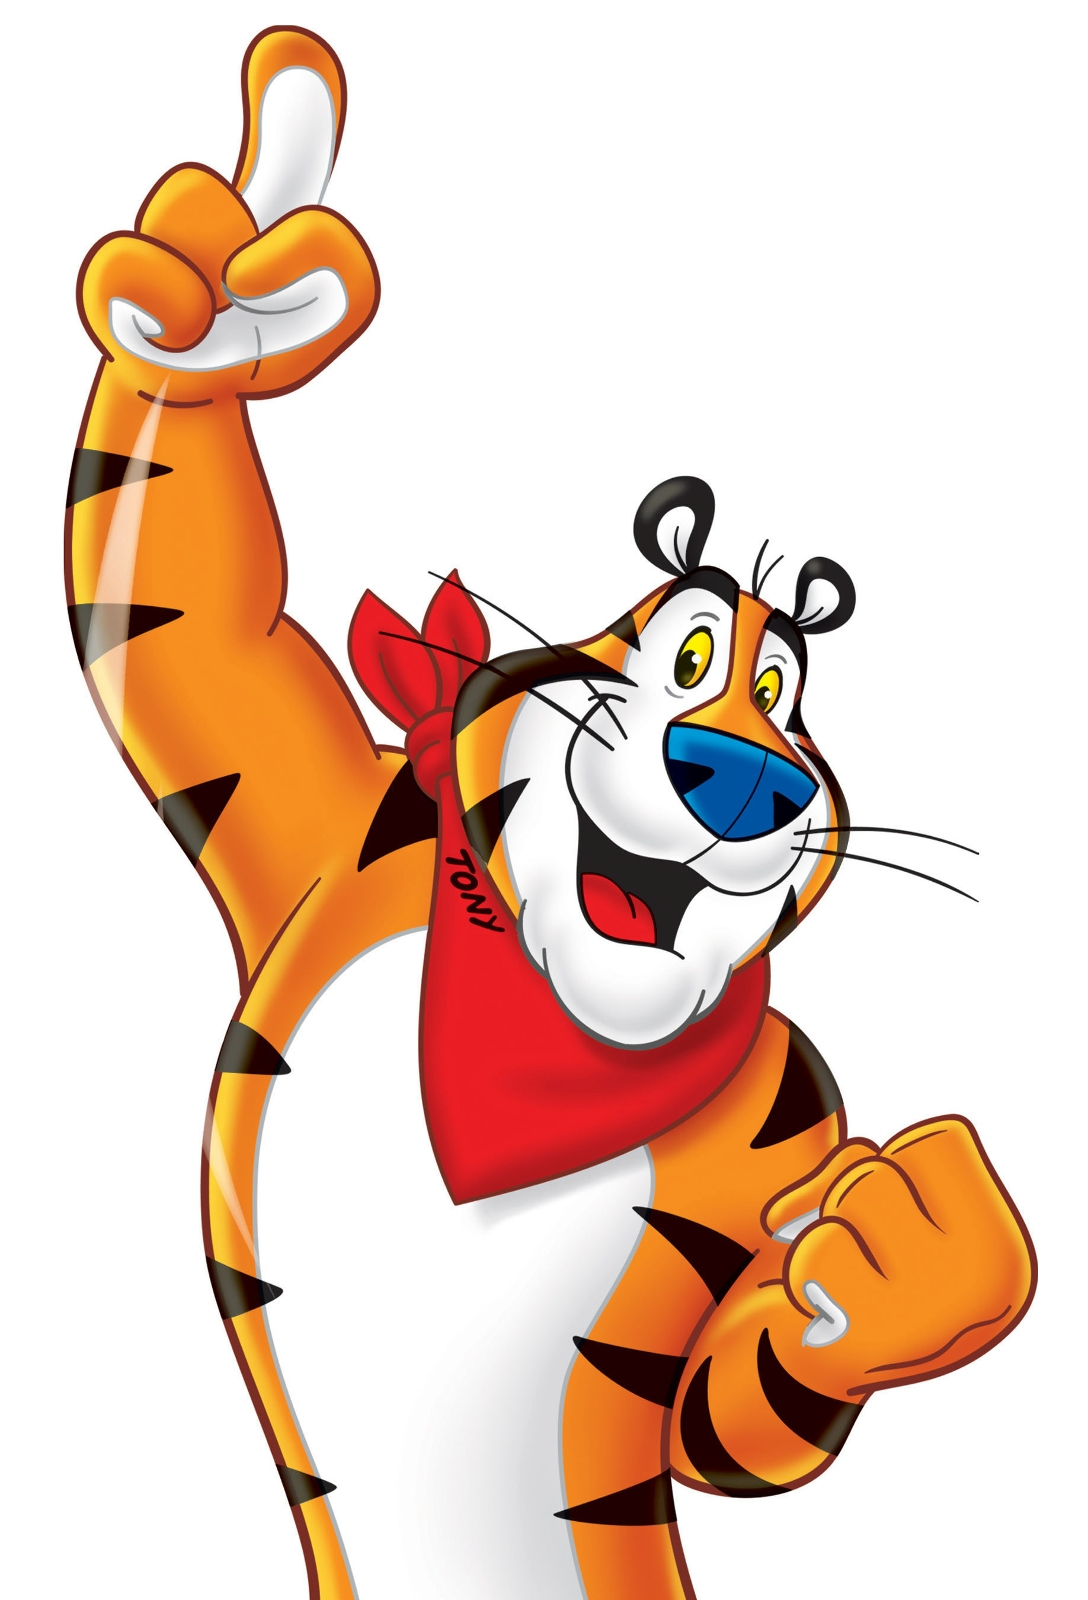 Tony the Tiger in addition Tony the Tiger additionally 7064 Goblin Shaman By Rafael C Costa Rpg Character 3d furthermore South Park OC Bailey Swanson 333391269 in addition Cereal Box Packaging Design. on cereal cartoon character